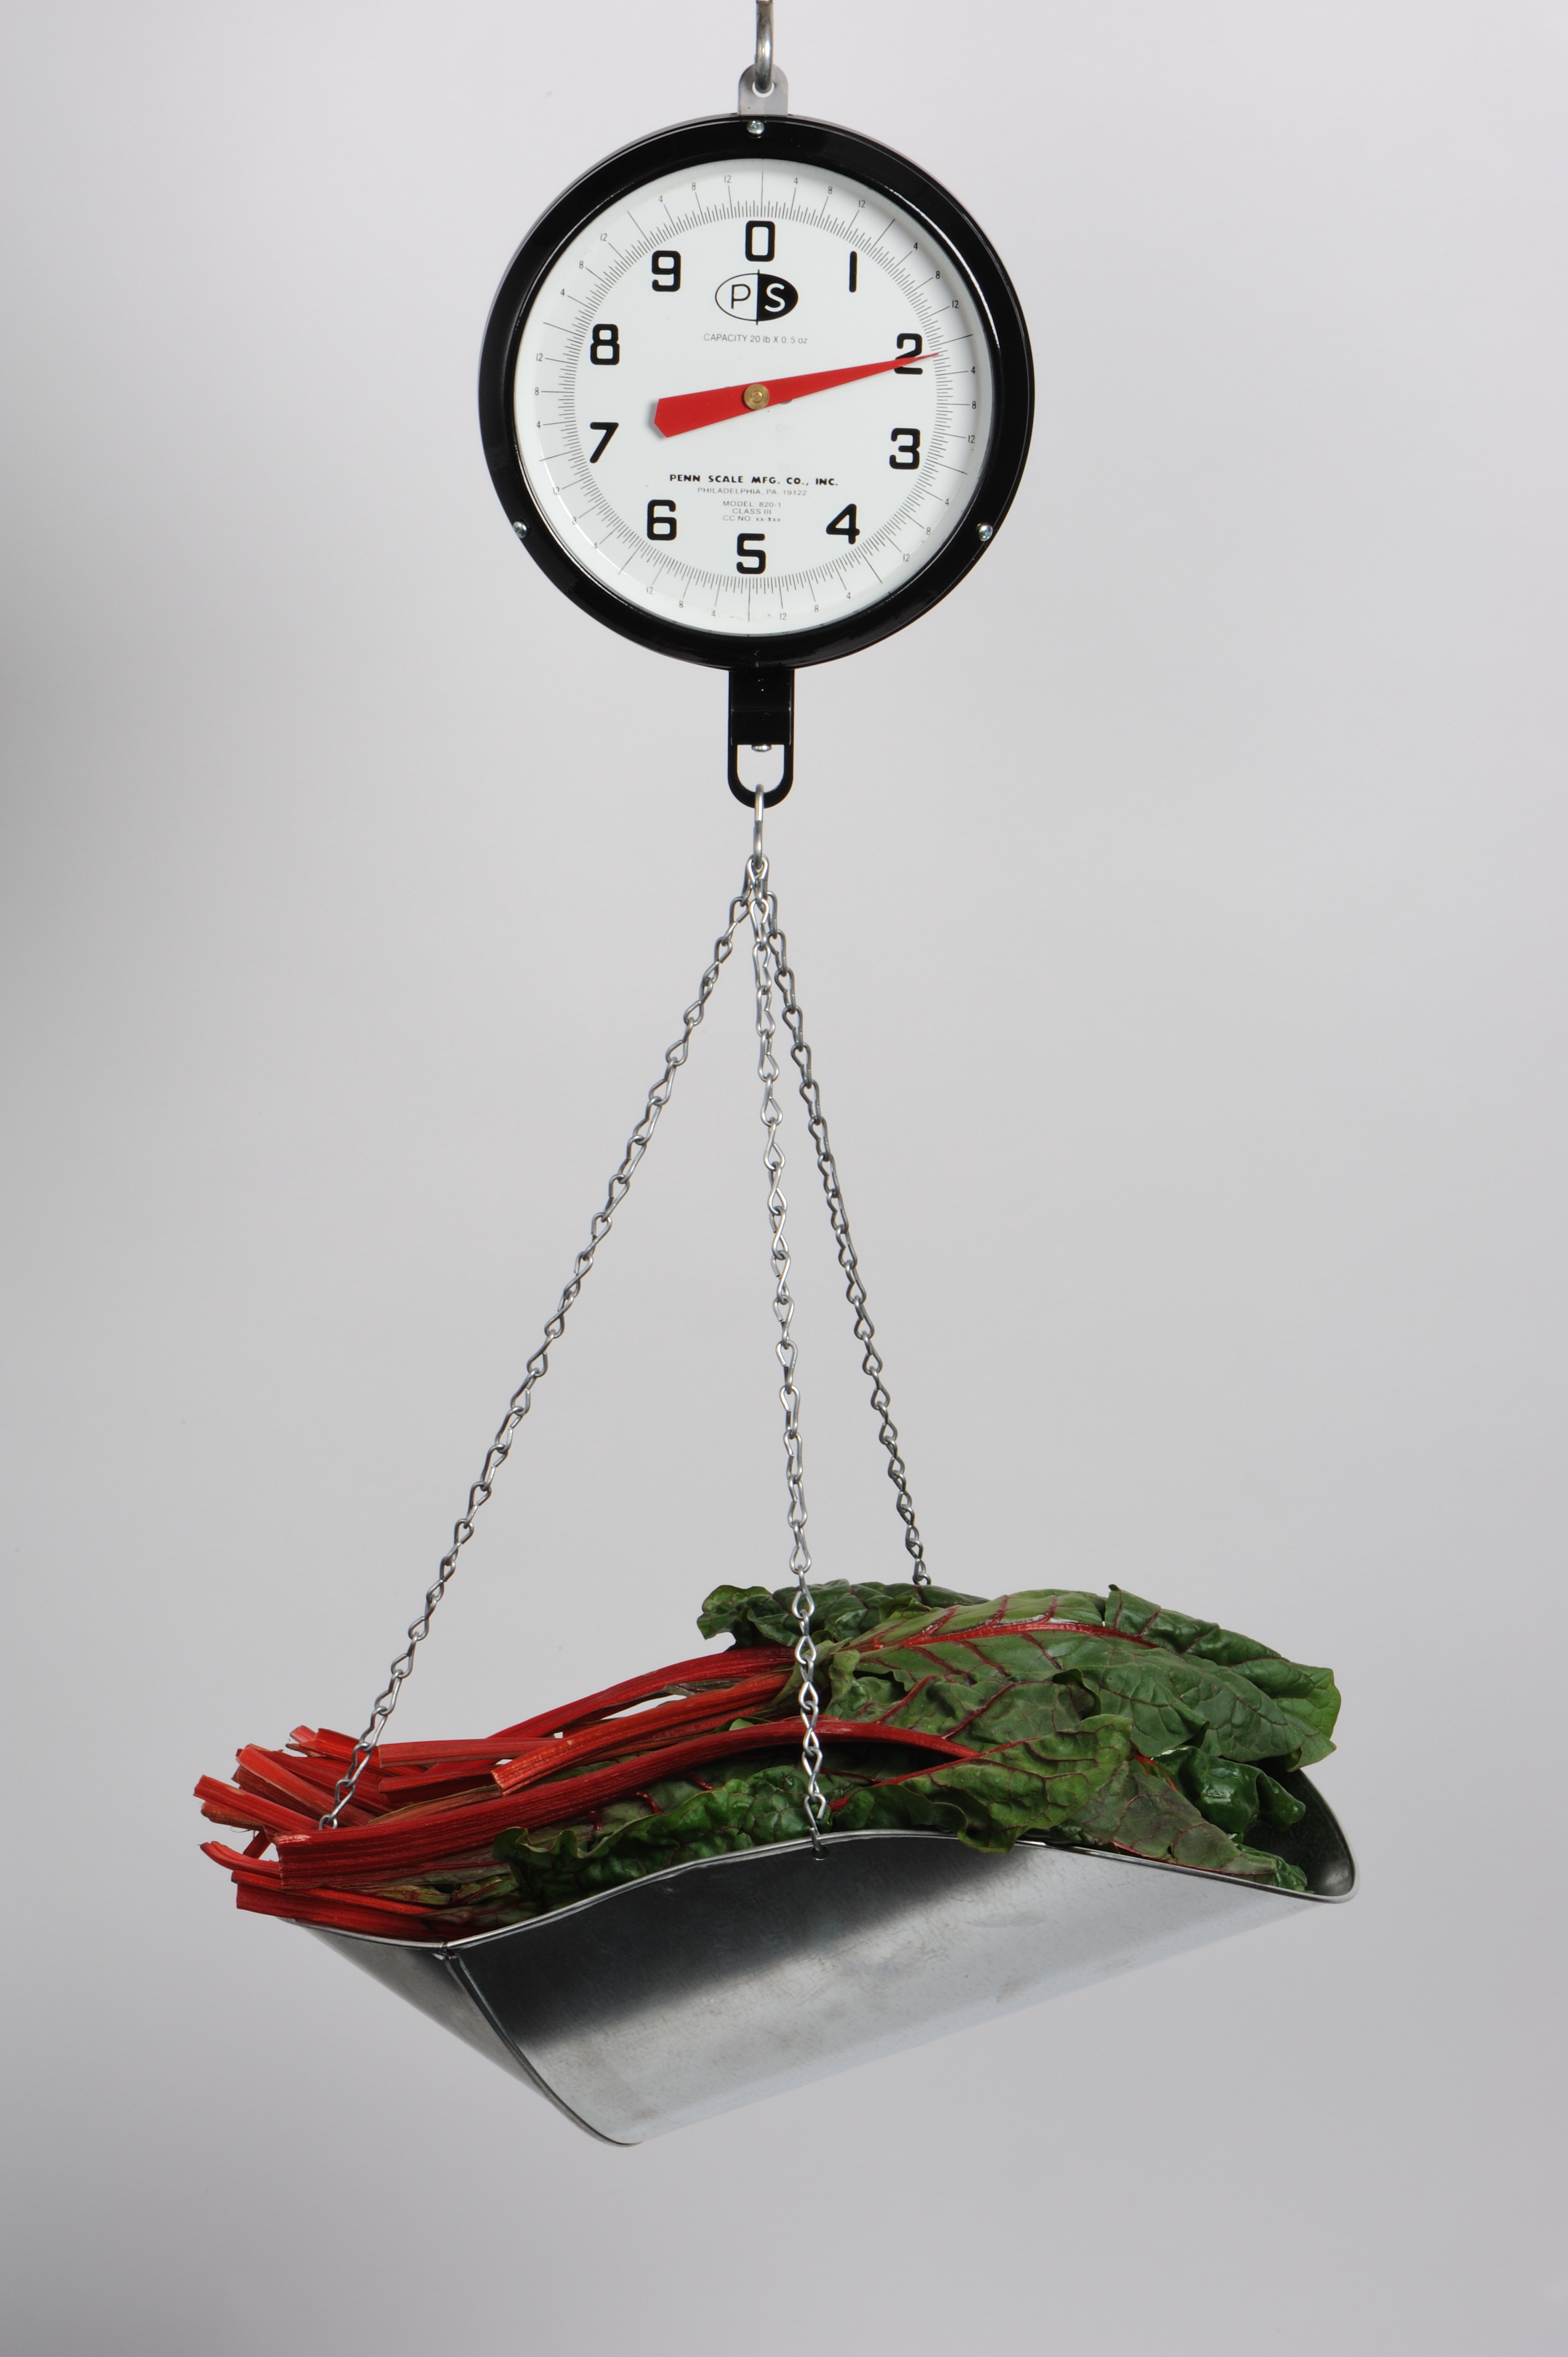 Penn Scale 820 VGD 20 Pound 8 inch Hanging Scale with Vegetable Scoop Glass and Double Dial